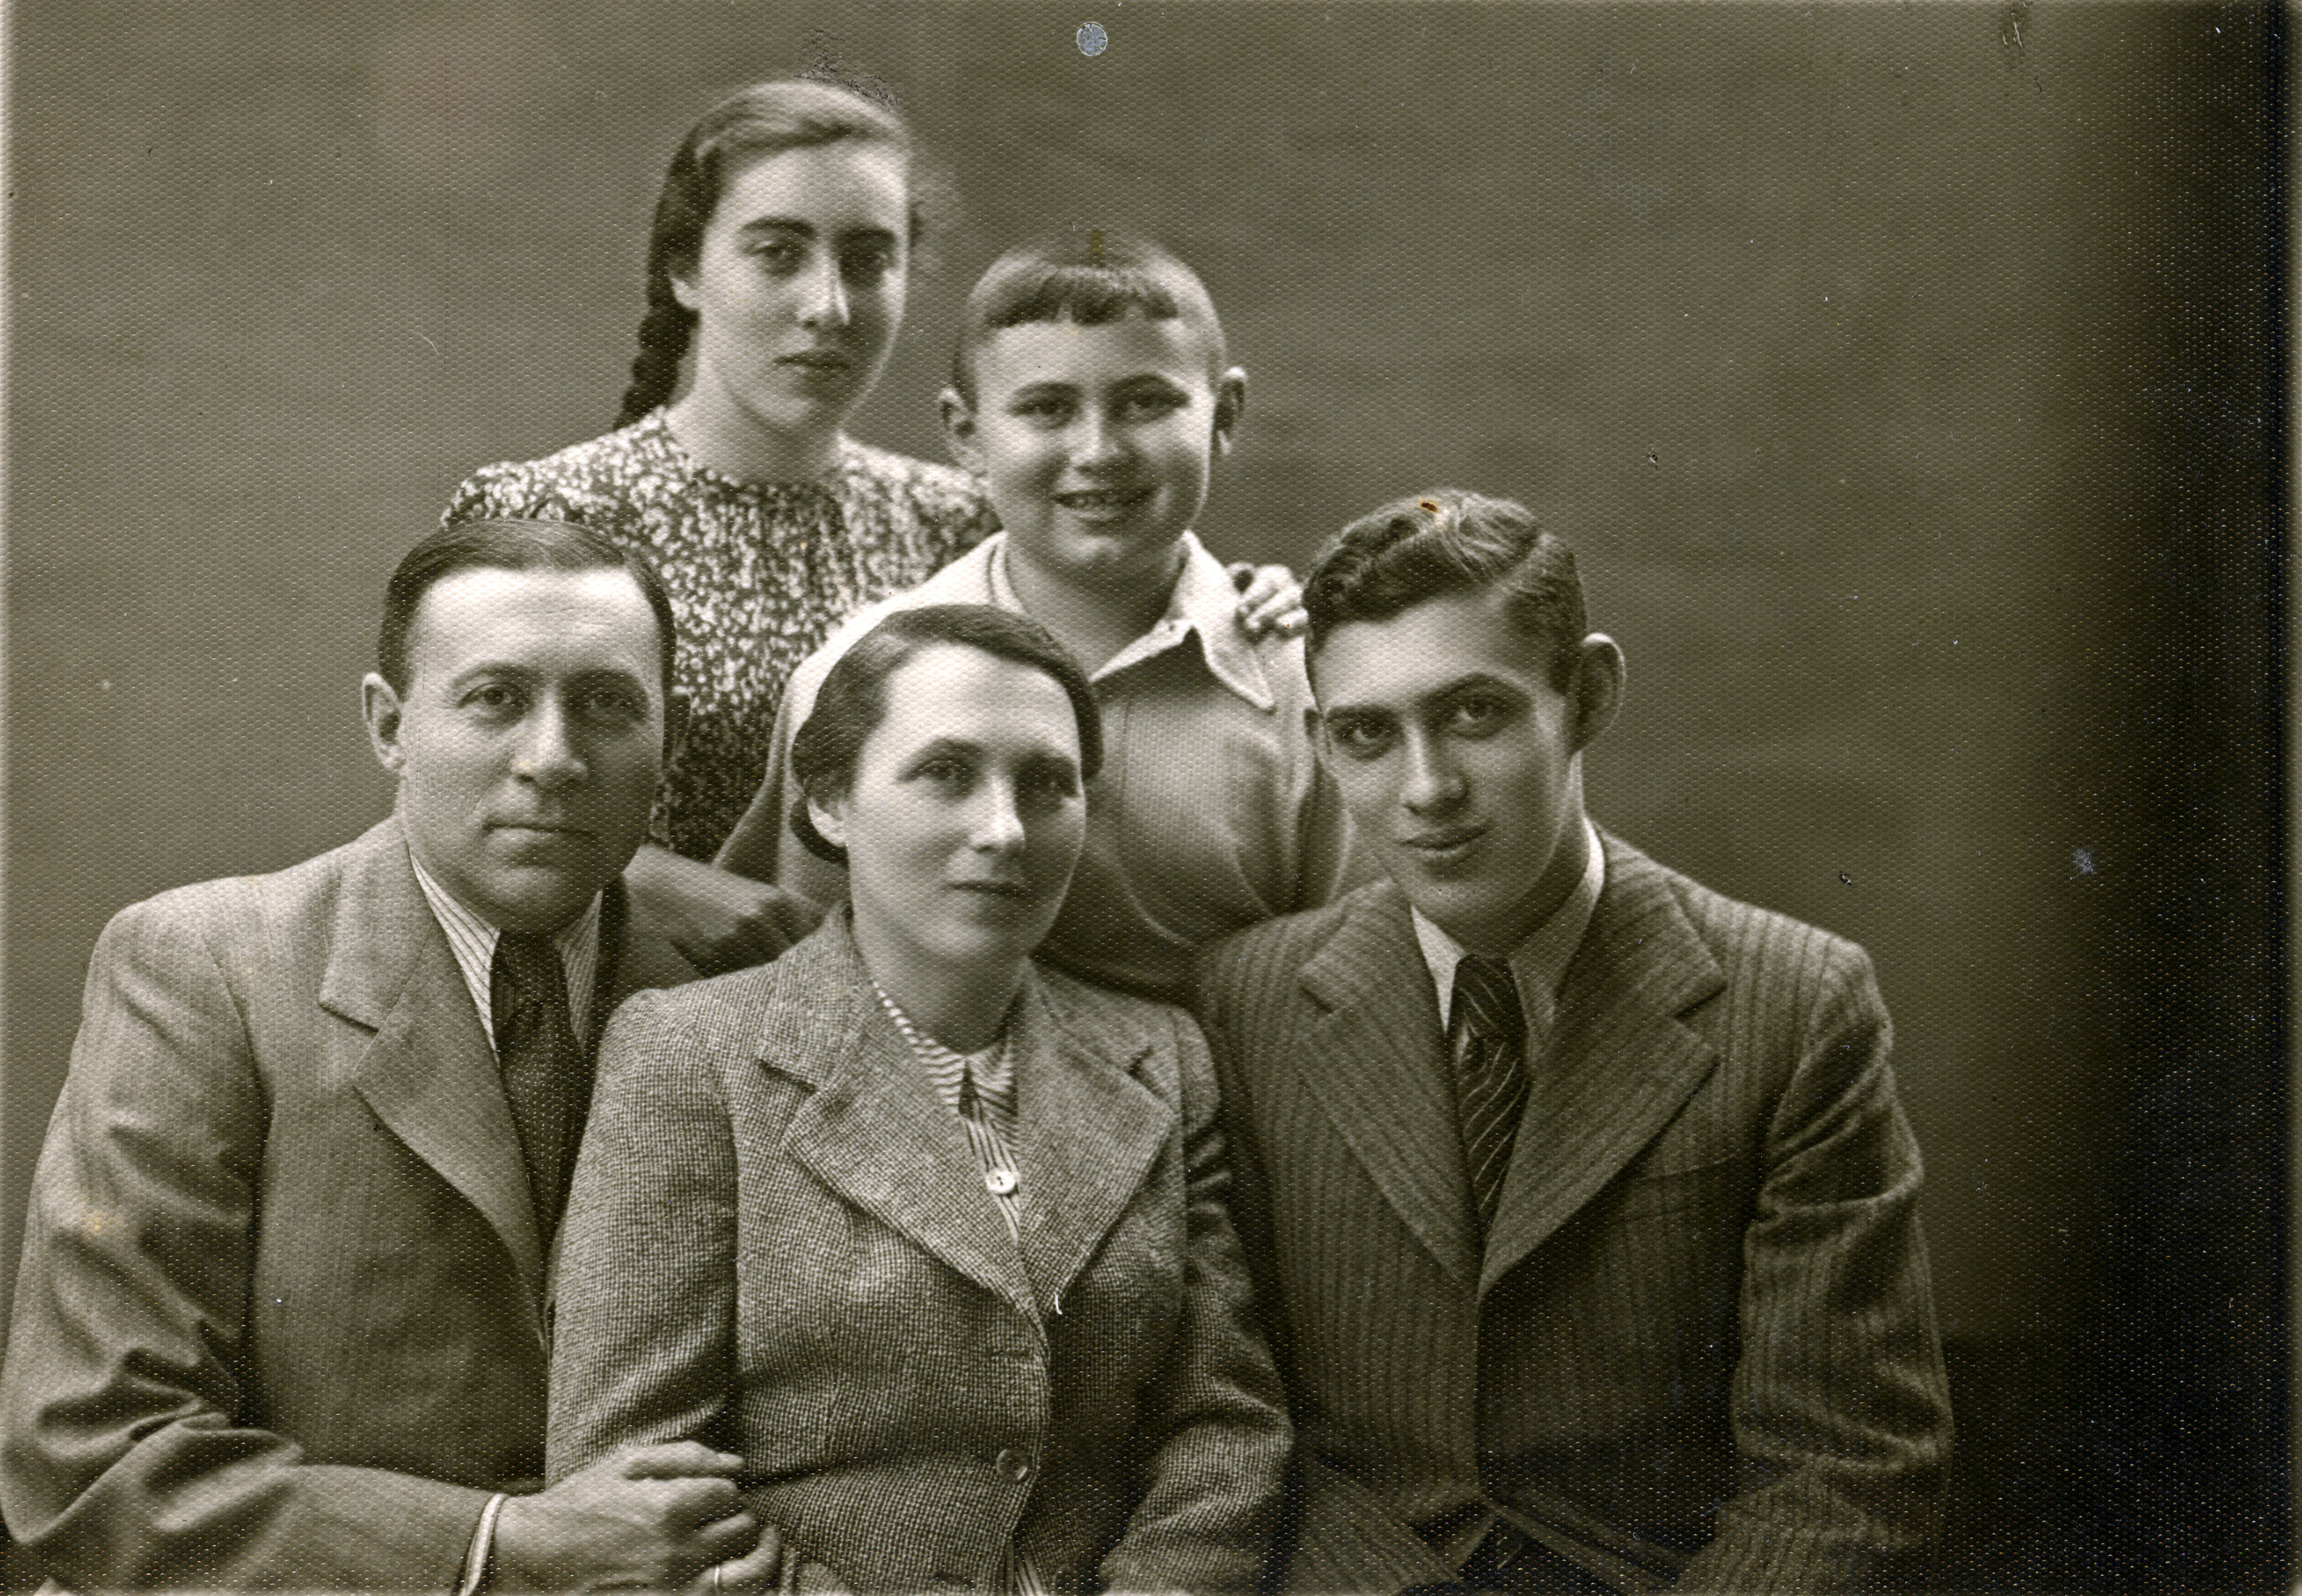 Studio portrait of a Jewish family in Kalisz, Poland.  Pictured are Hersz and Rachel Gluba, with their children Ester, Michael, and Szamszon.